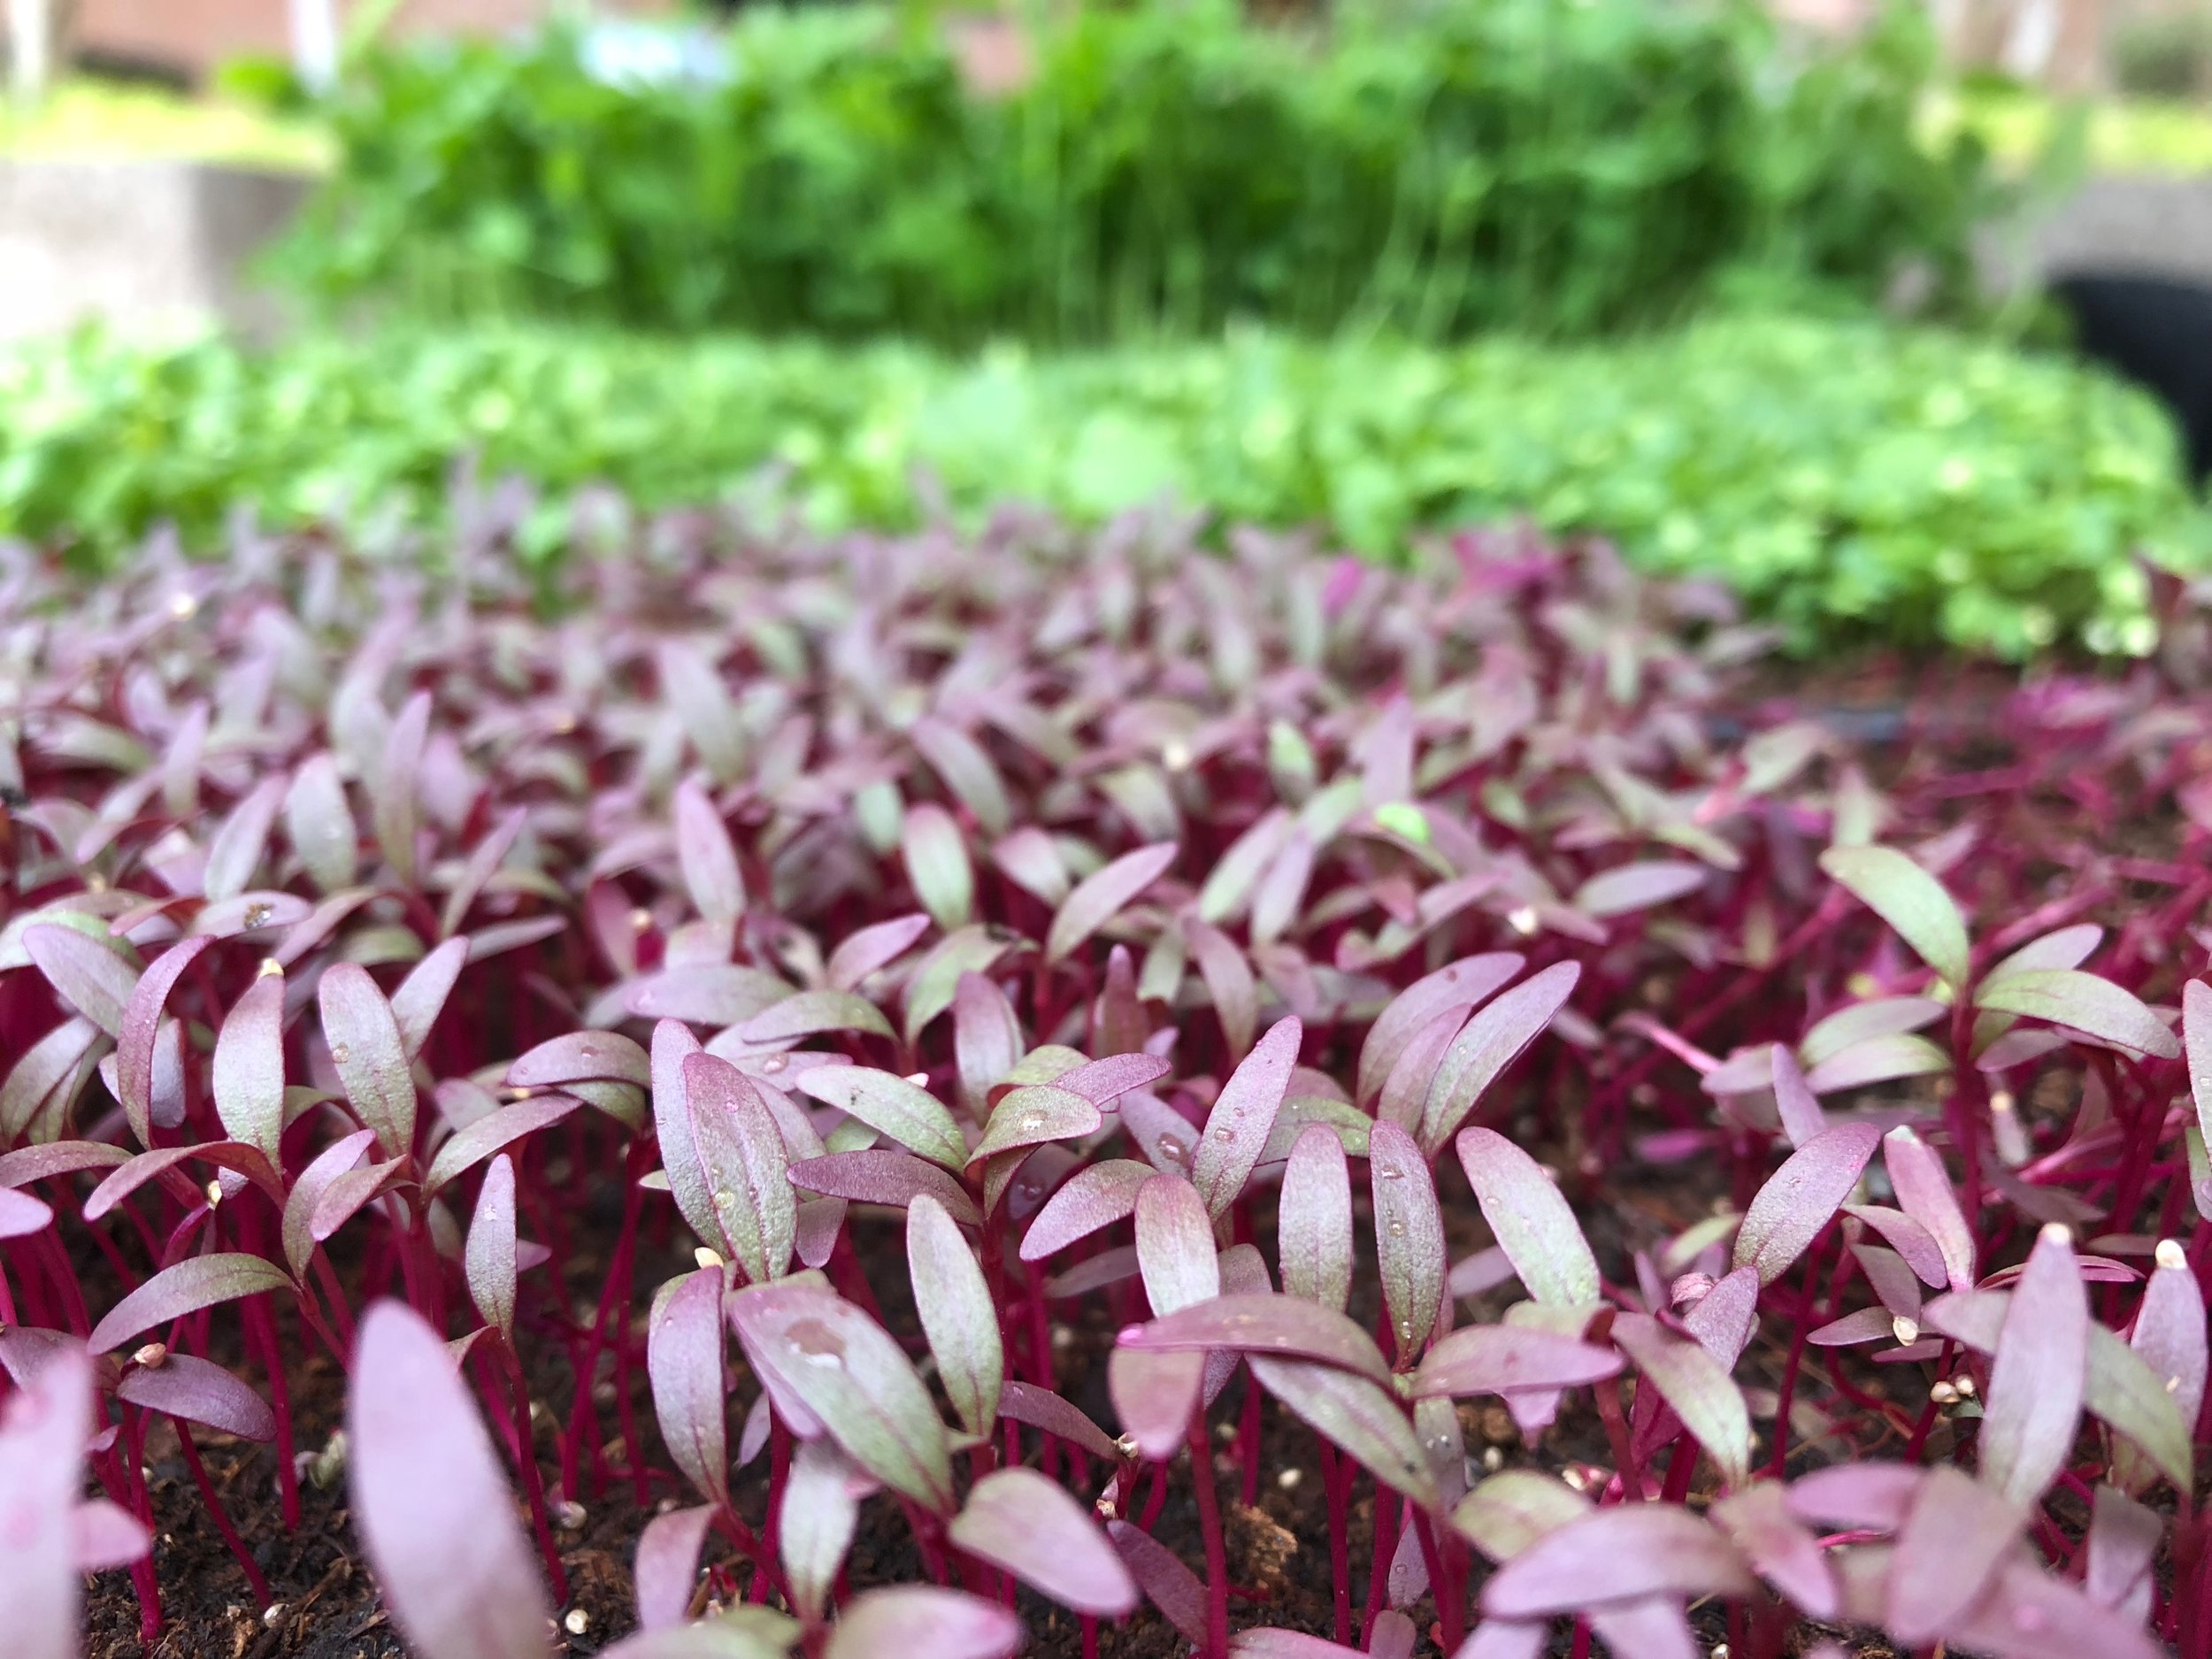 Bass Farms offers some 40 varieties of microgreens.